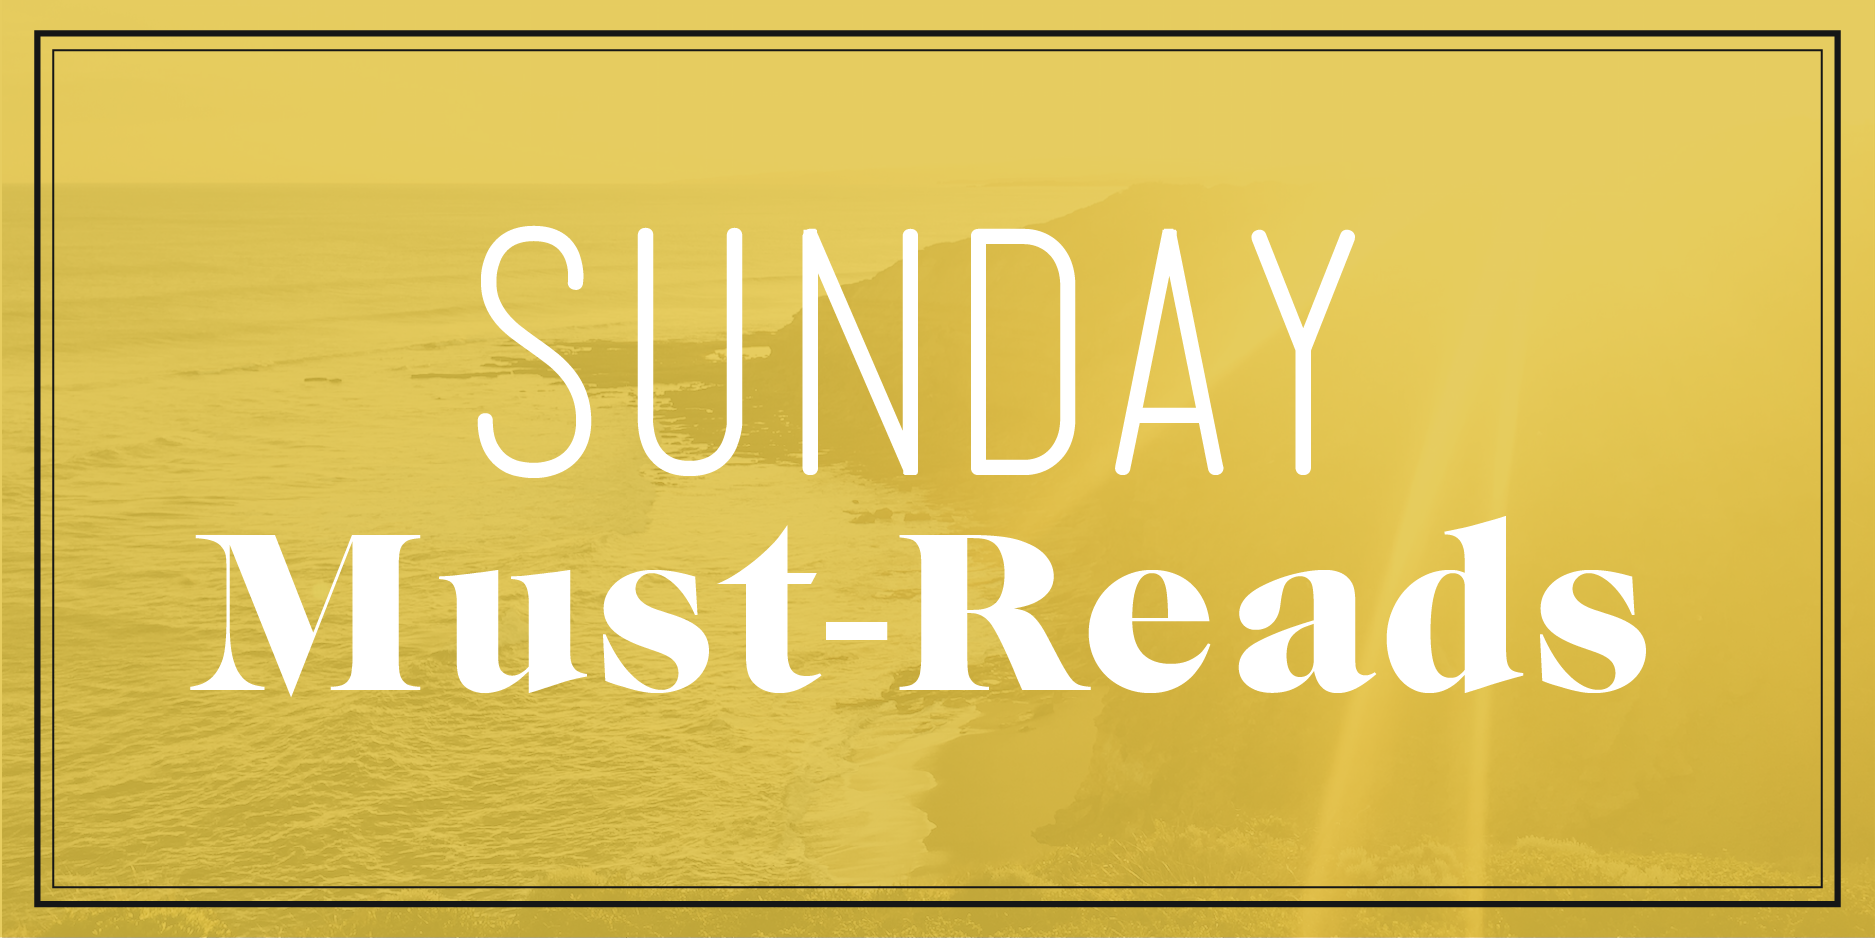 Sunday Must Reads Banner